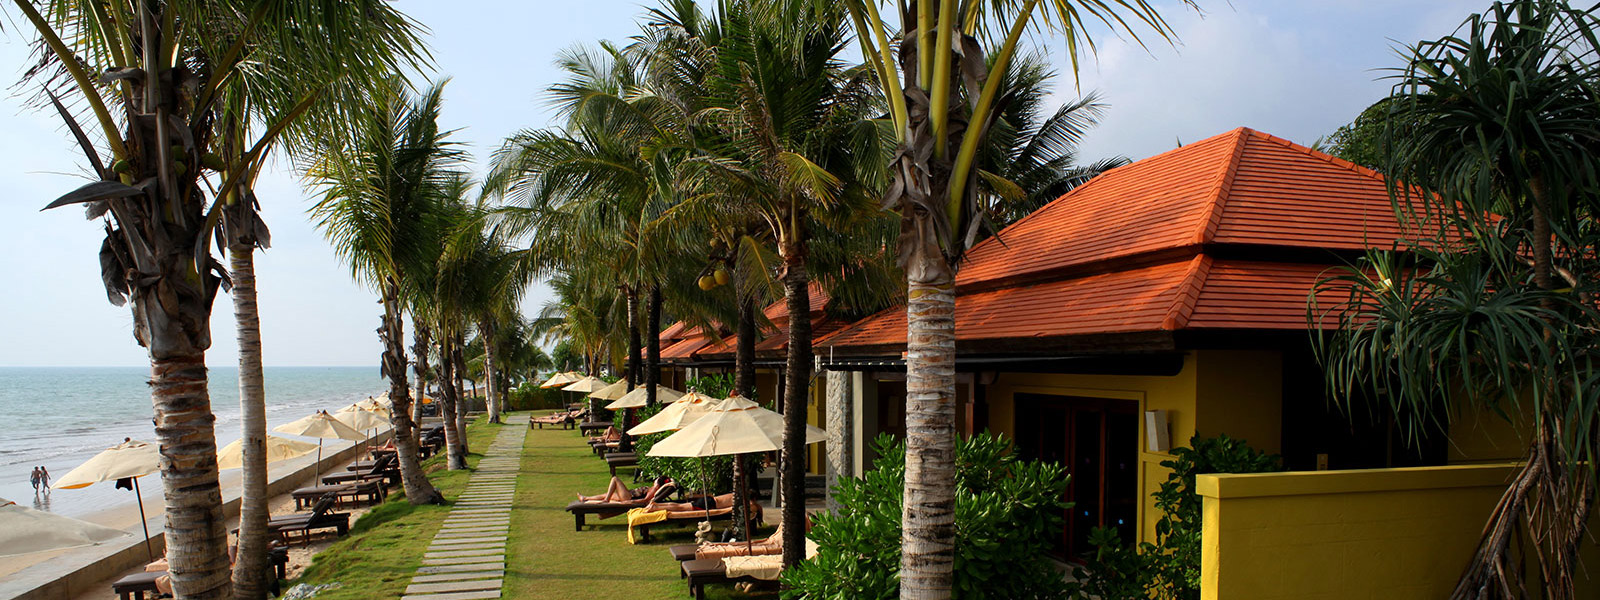 Chongfah Resort Khao Lak - Accommodation Seaview Bungalow